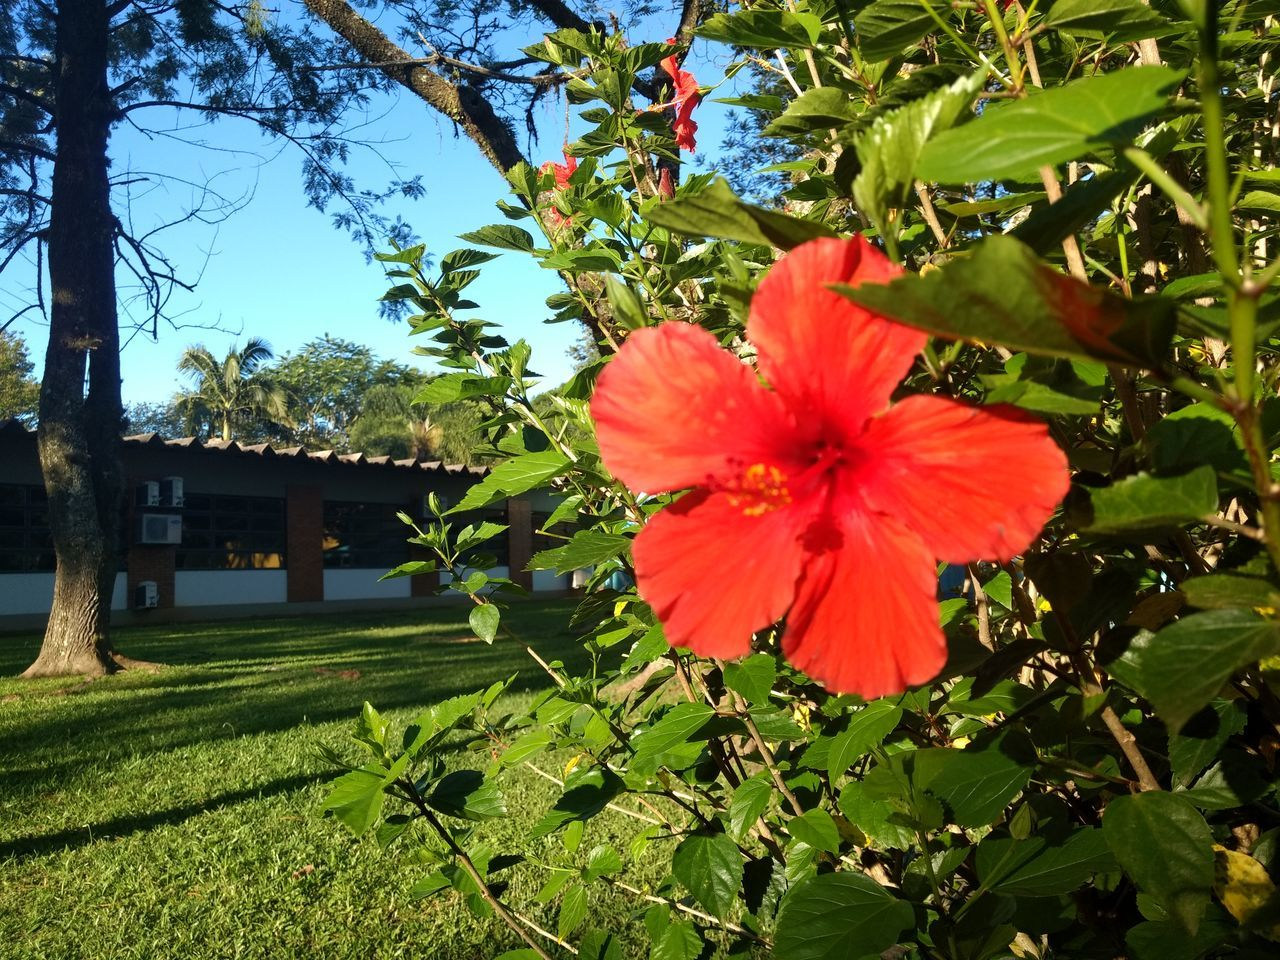 flower, growth, beauty in nature, nature, day, no people, plant, outdoors, petal, fragility, flower head, blooming, freshness, leaf, hibiscus, tree, close-up